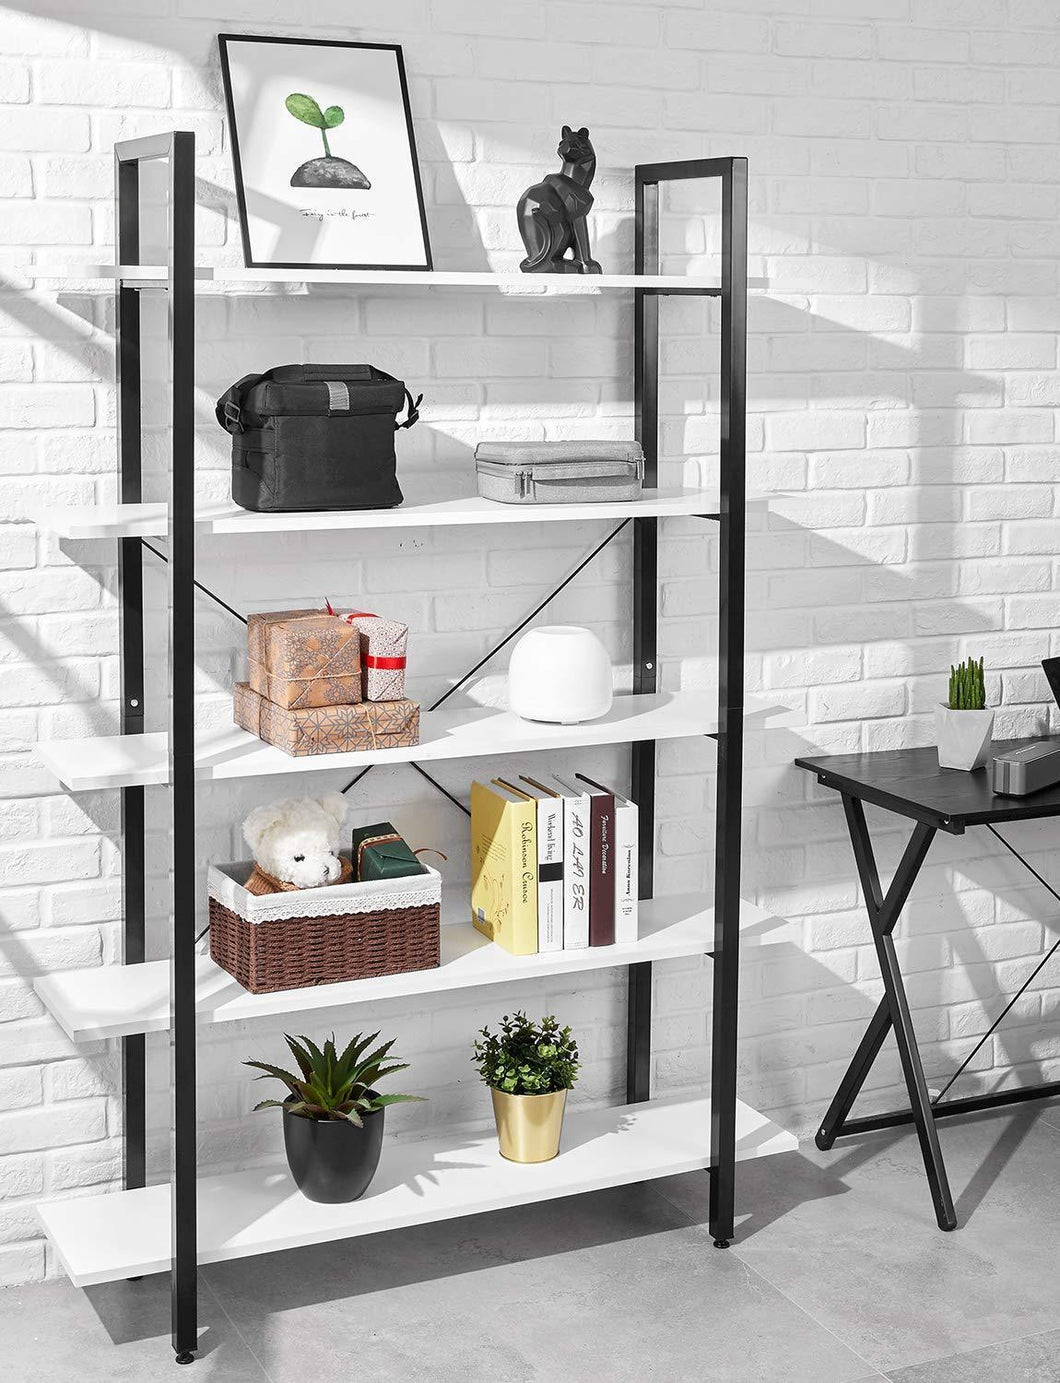 Budget friendly oraf bookshelf 5 tier 47lx13wx70h inches bookcase solid 130lbs load capacity industrial bookshelf sturdy bookshelves with steel frame assemble easily storage organizer home office shelf modern white